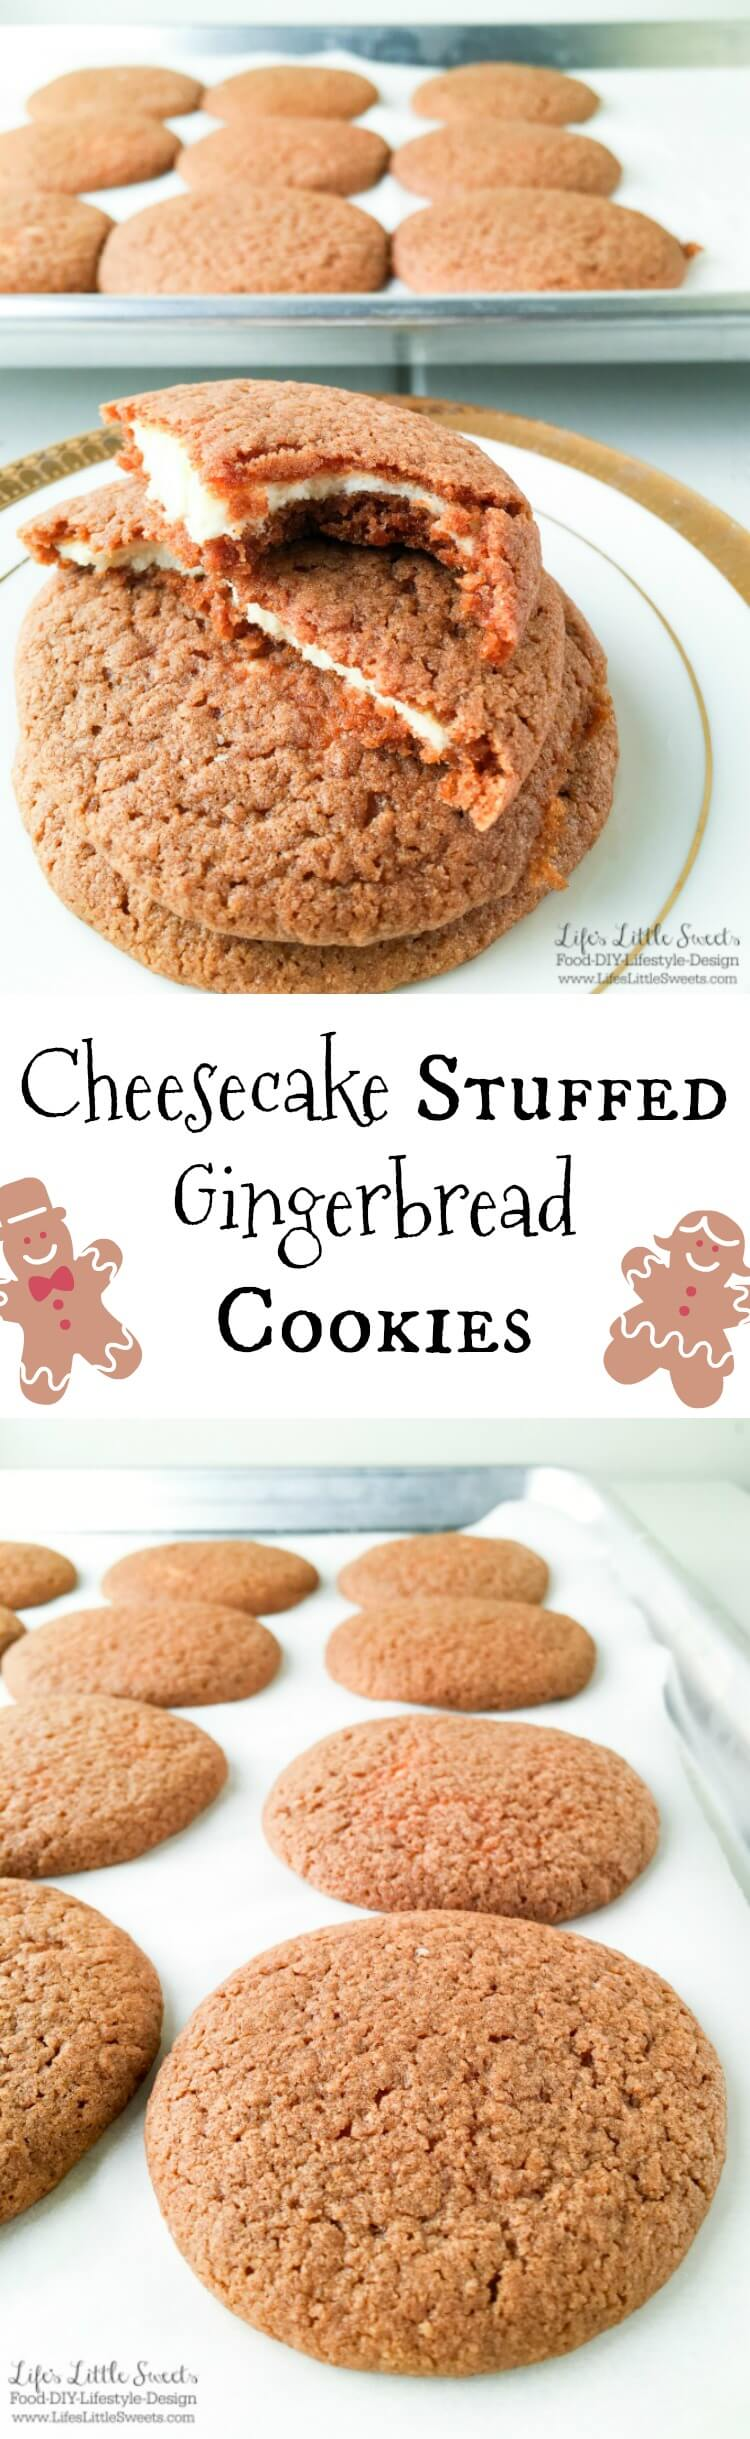 Cheesecake Stuffed Gingerbread Cookies - Chewy, Soft ...